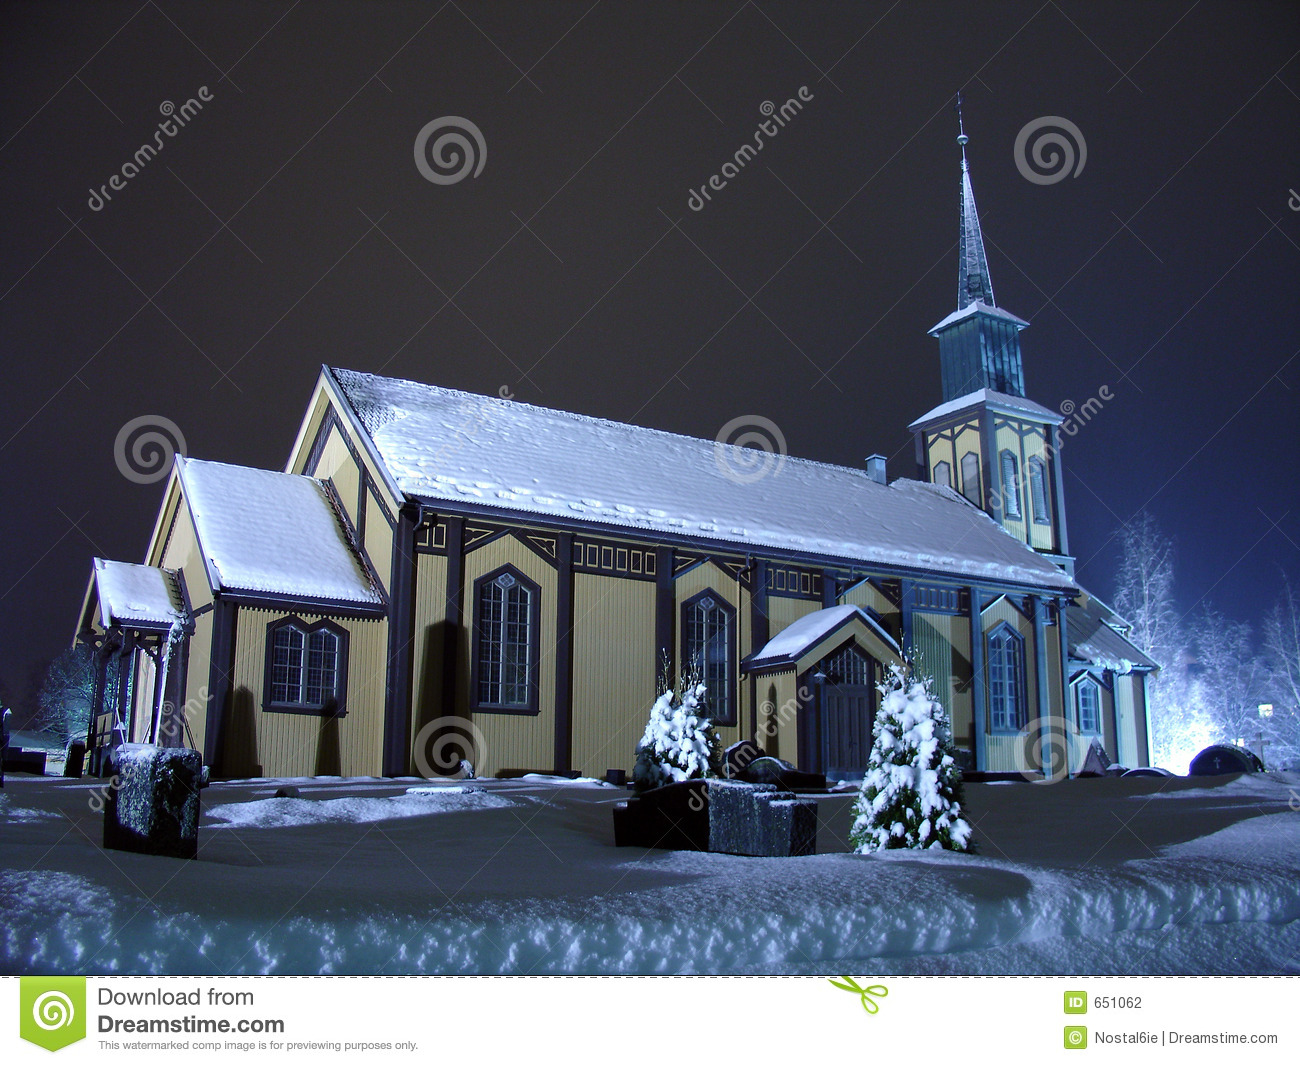 kirche auf weihnachten stockfotografie bild 651062. Black Bedroom Furniture Sets. Home Design Ideas